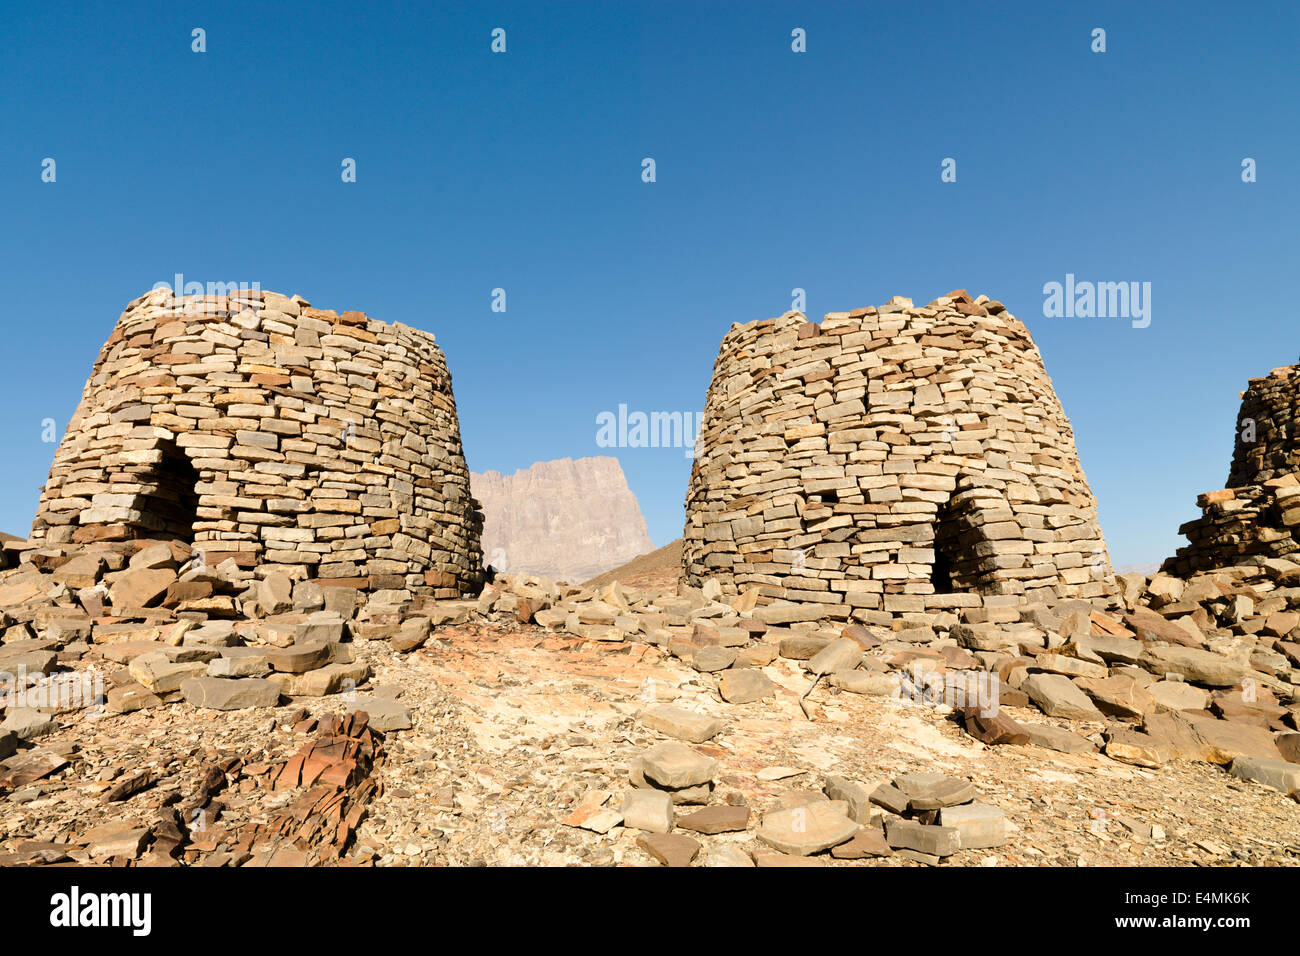 Beehive tombs, a UNESCO World Heritage site. Located at Al-Ayn in the Hajar Mountains of Oman in the MIddle East. - Stock Image